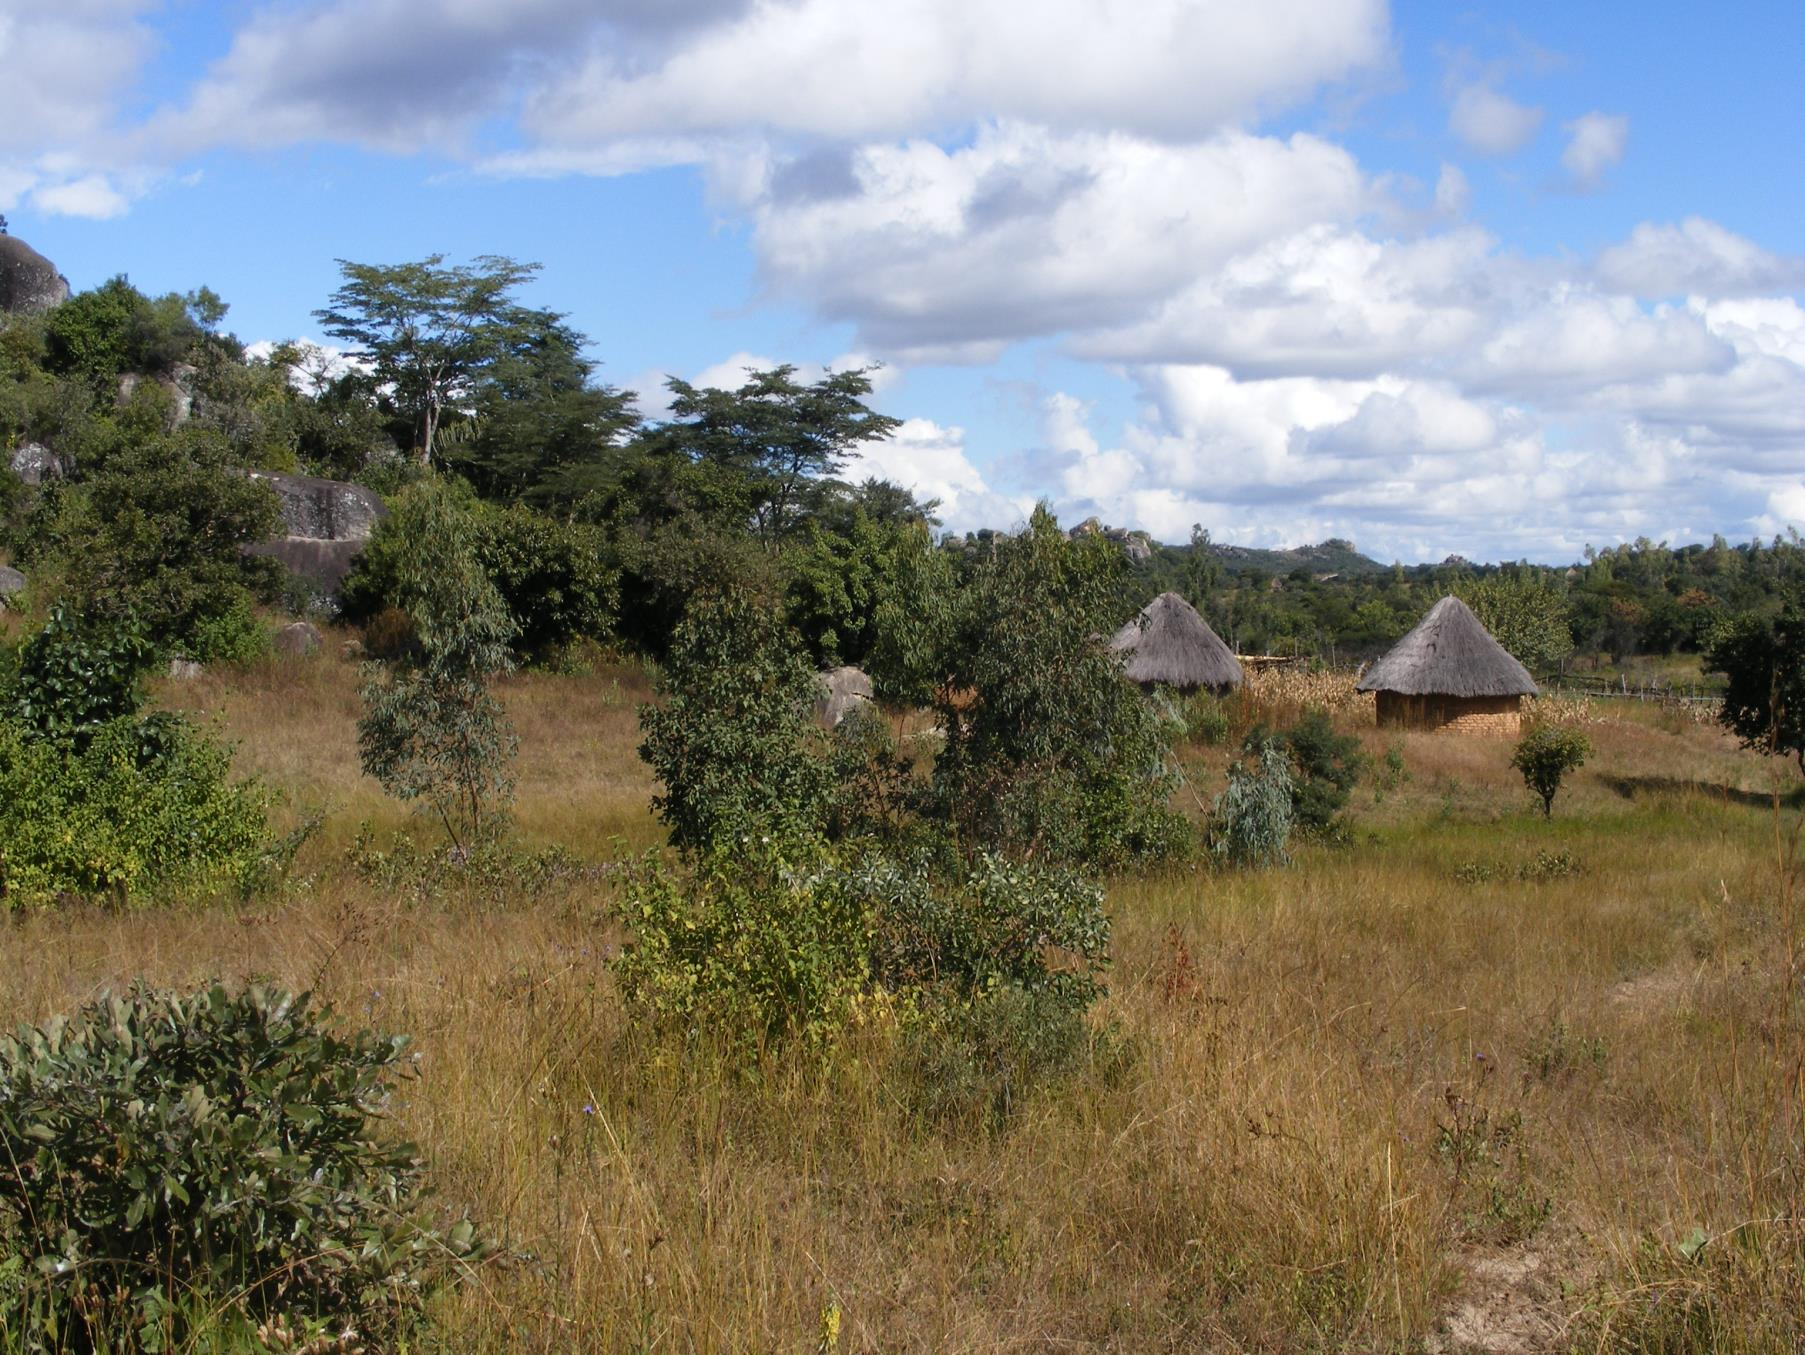 photo of some round huts with thatched roofs